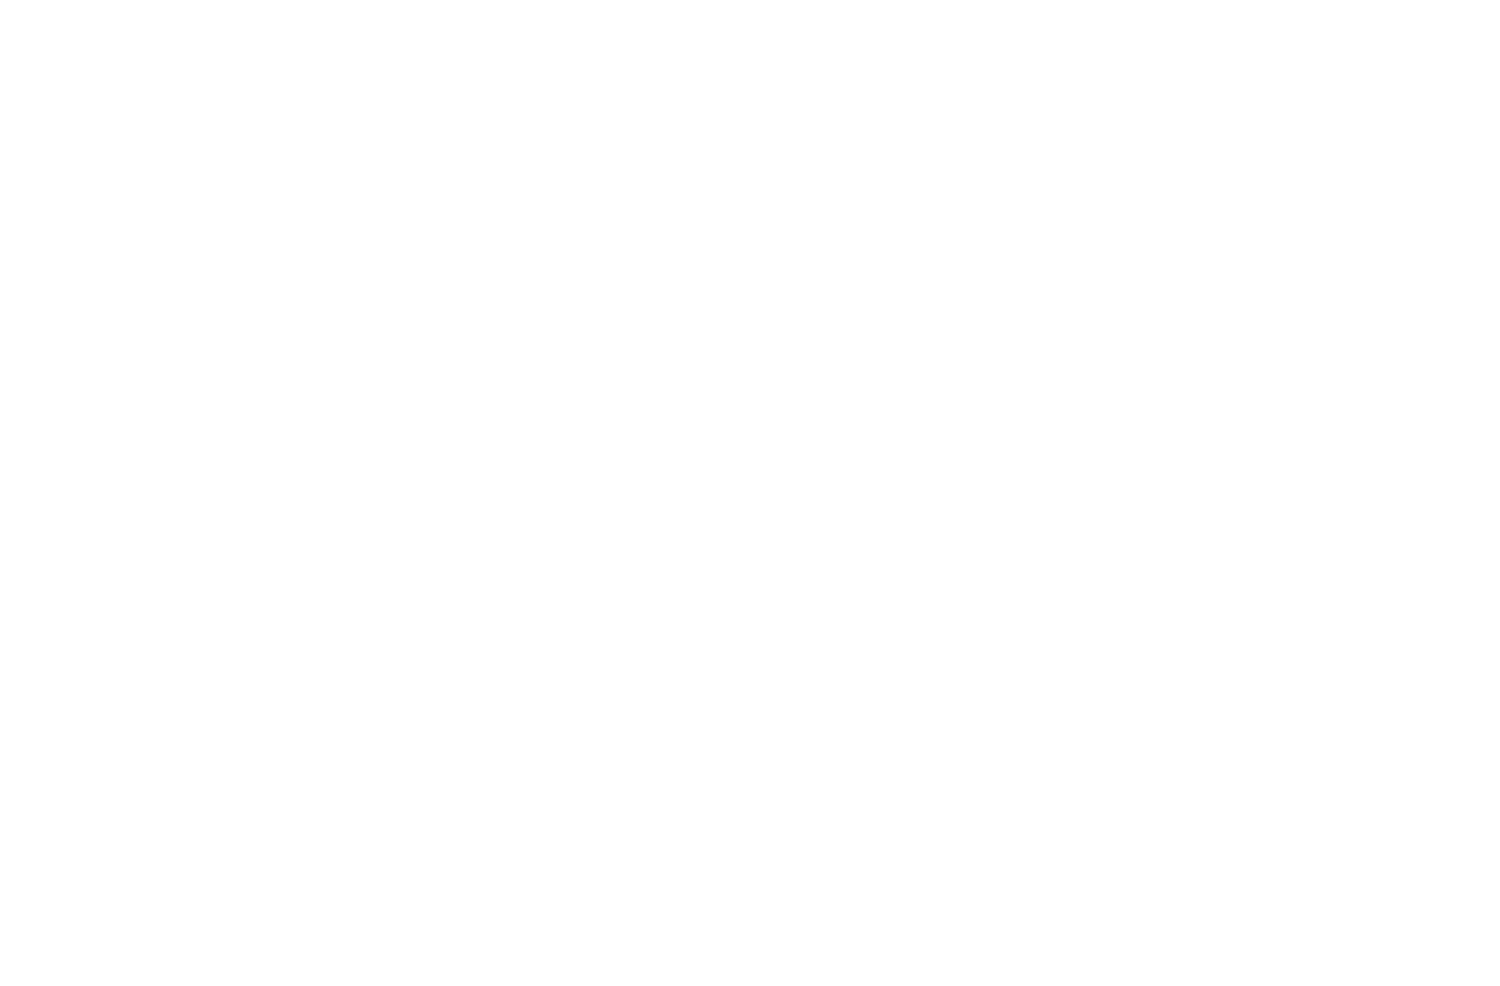 Rob Phillips Yoga